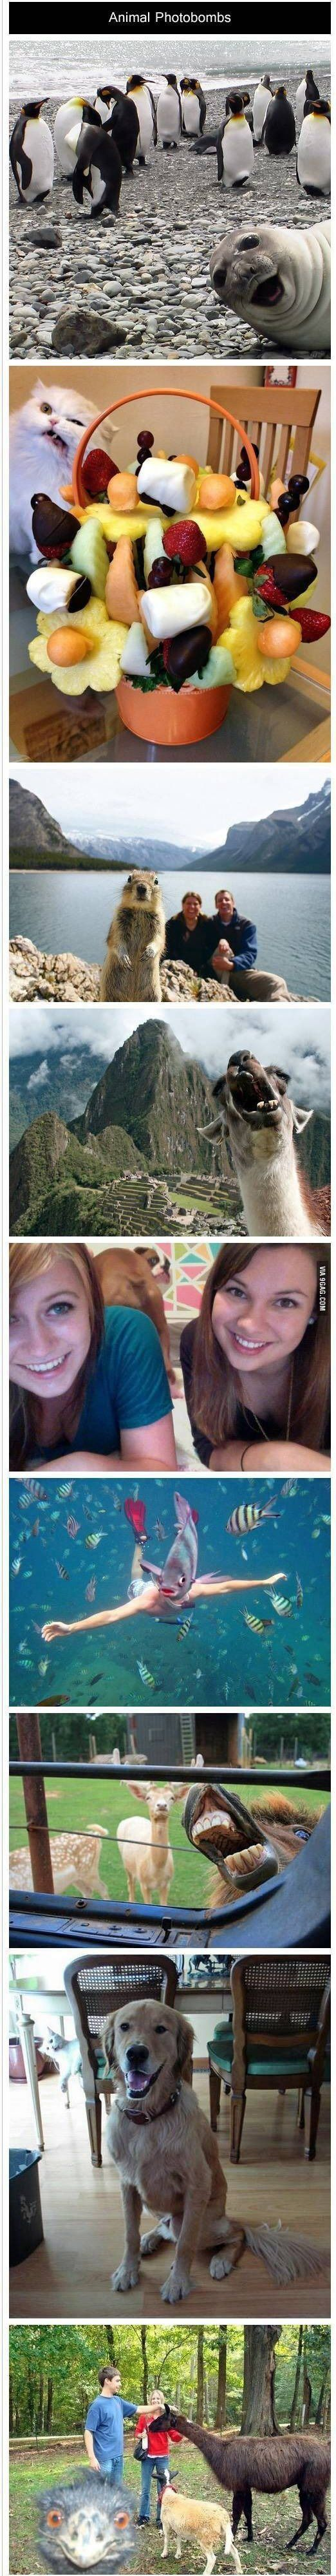 Who says photo-bombing is unnatural?